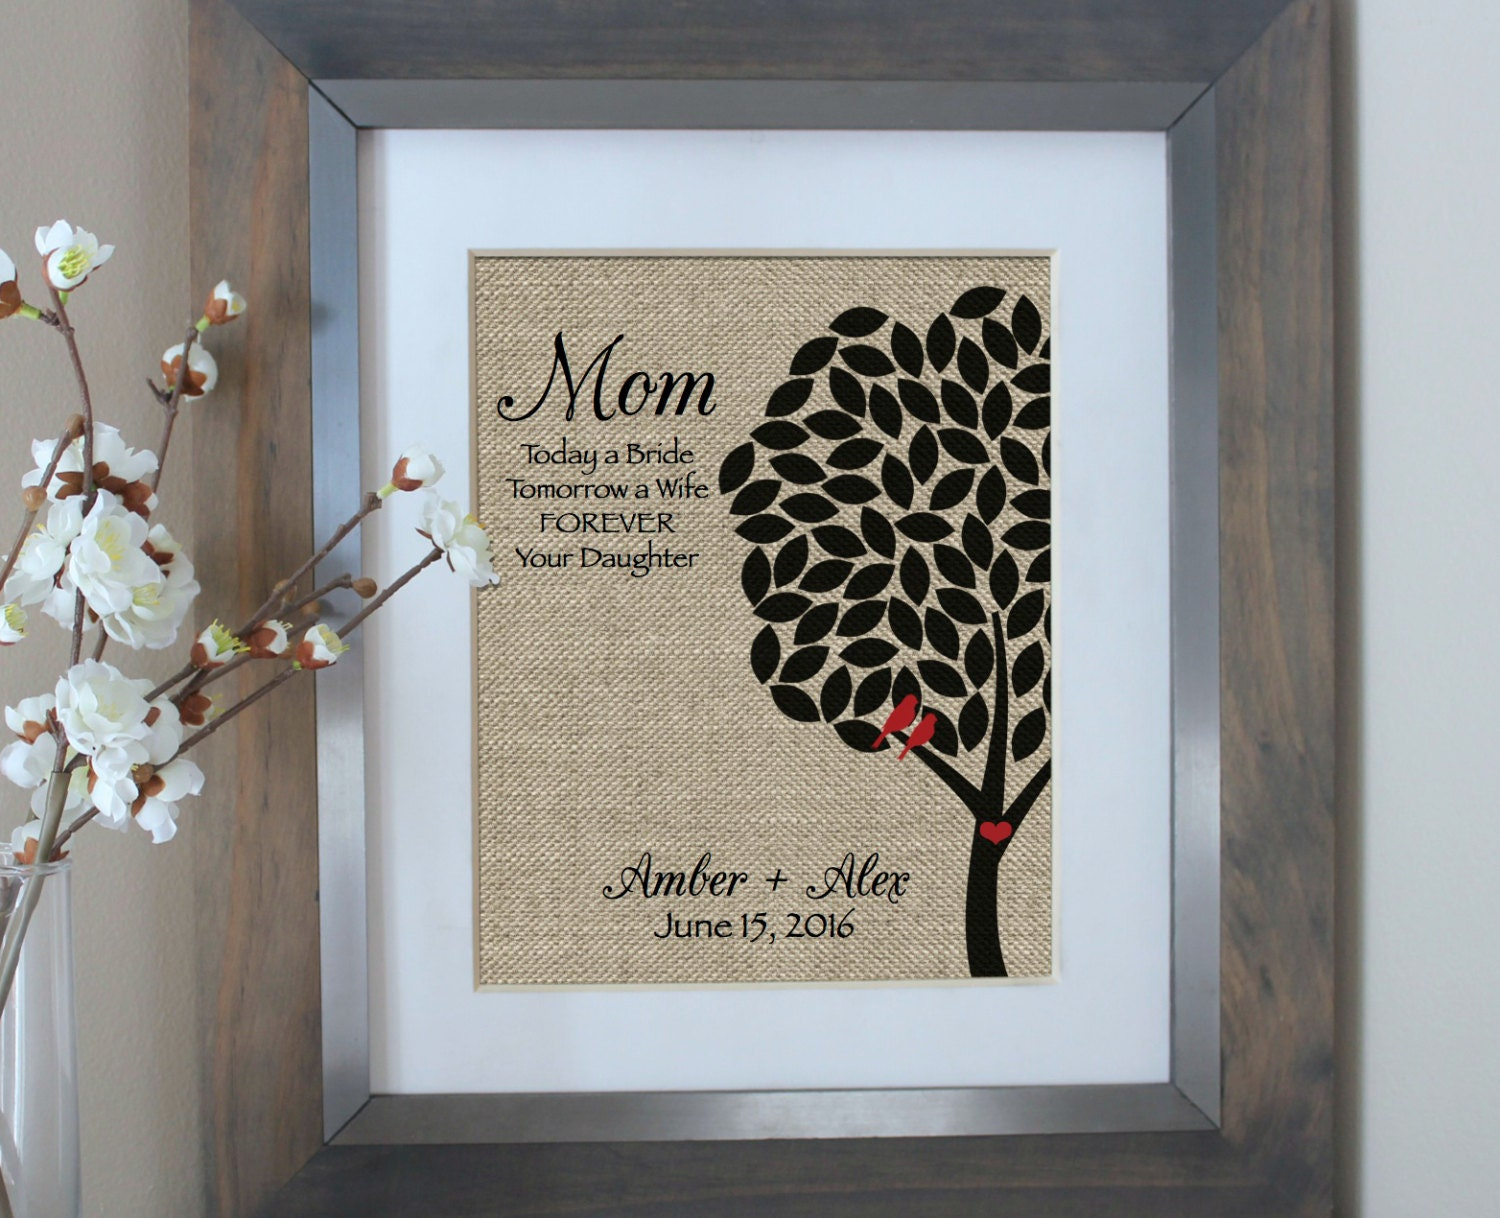 Wedding Thank You Gifts For Parents: Wedding Gift For Parents Wedding Thank You Gift Mother Of